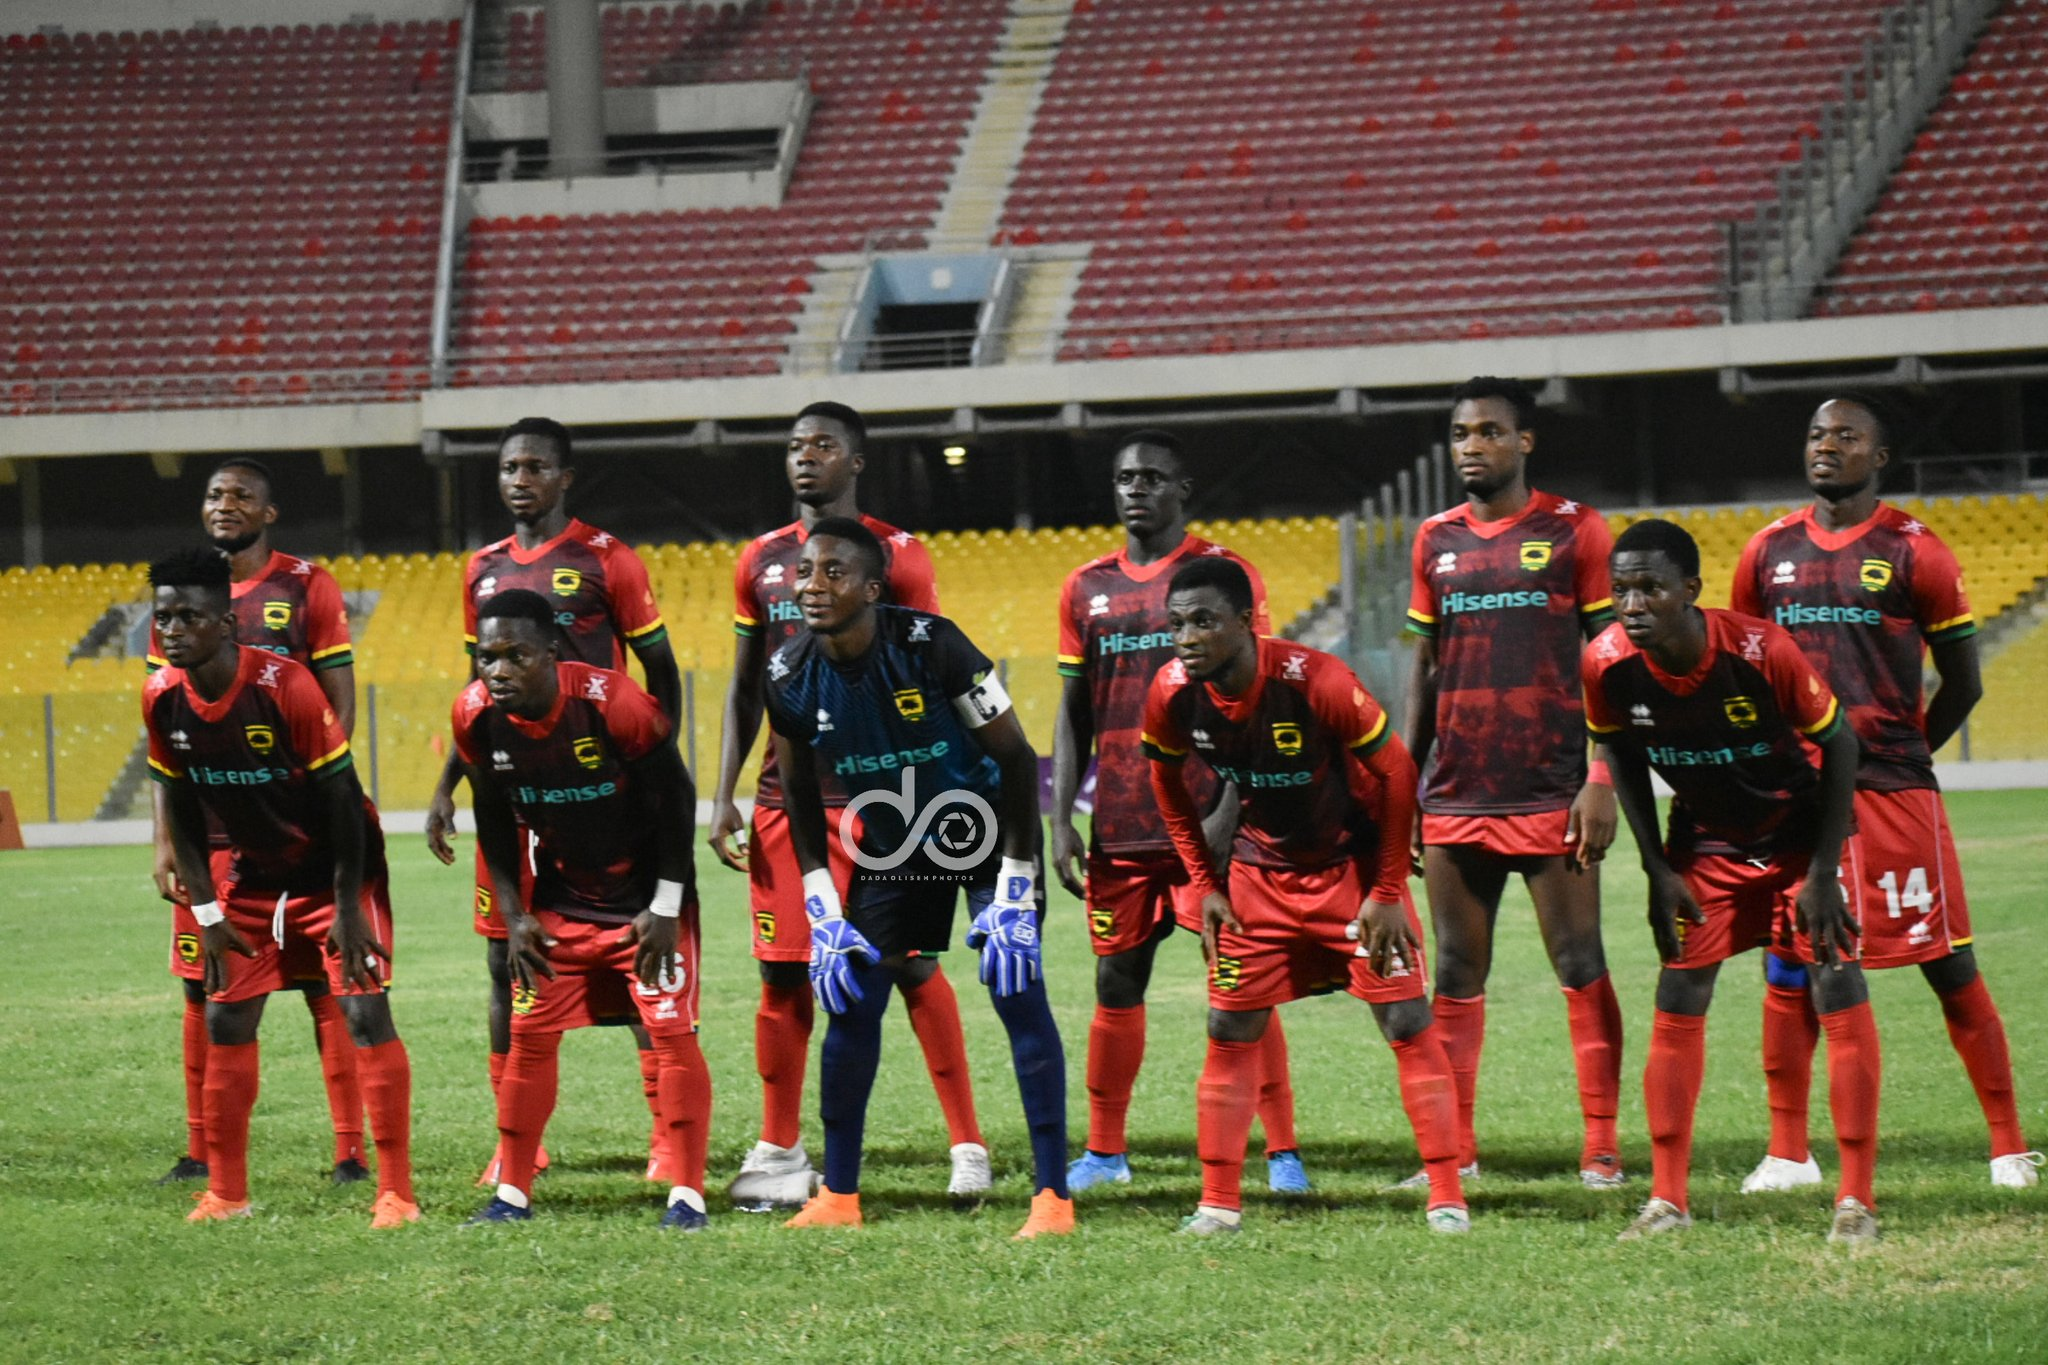 FEATURE: The Kotoko Revival – A Smithsonian jewel or touch of Brazil and Nkoranza?